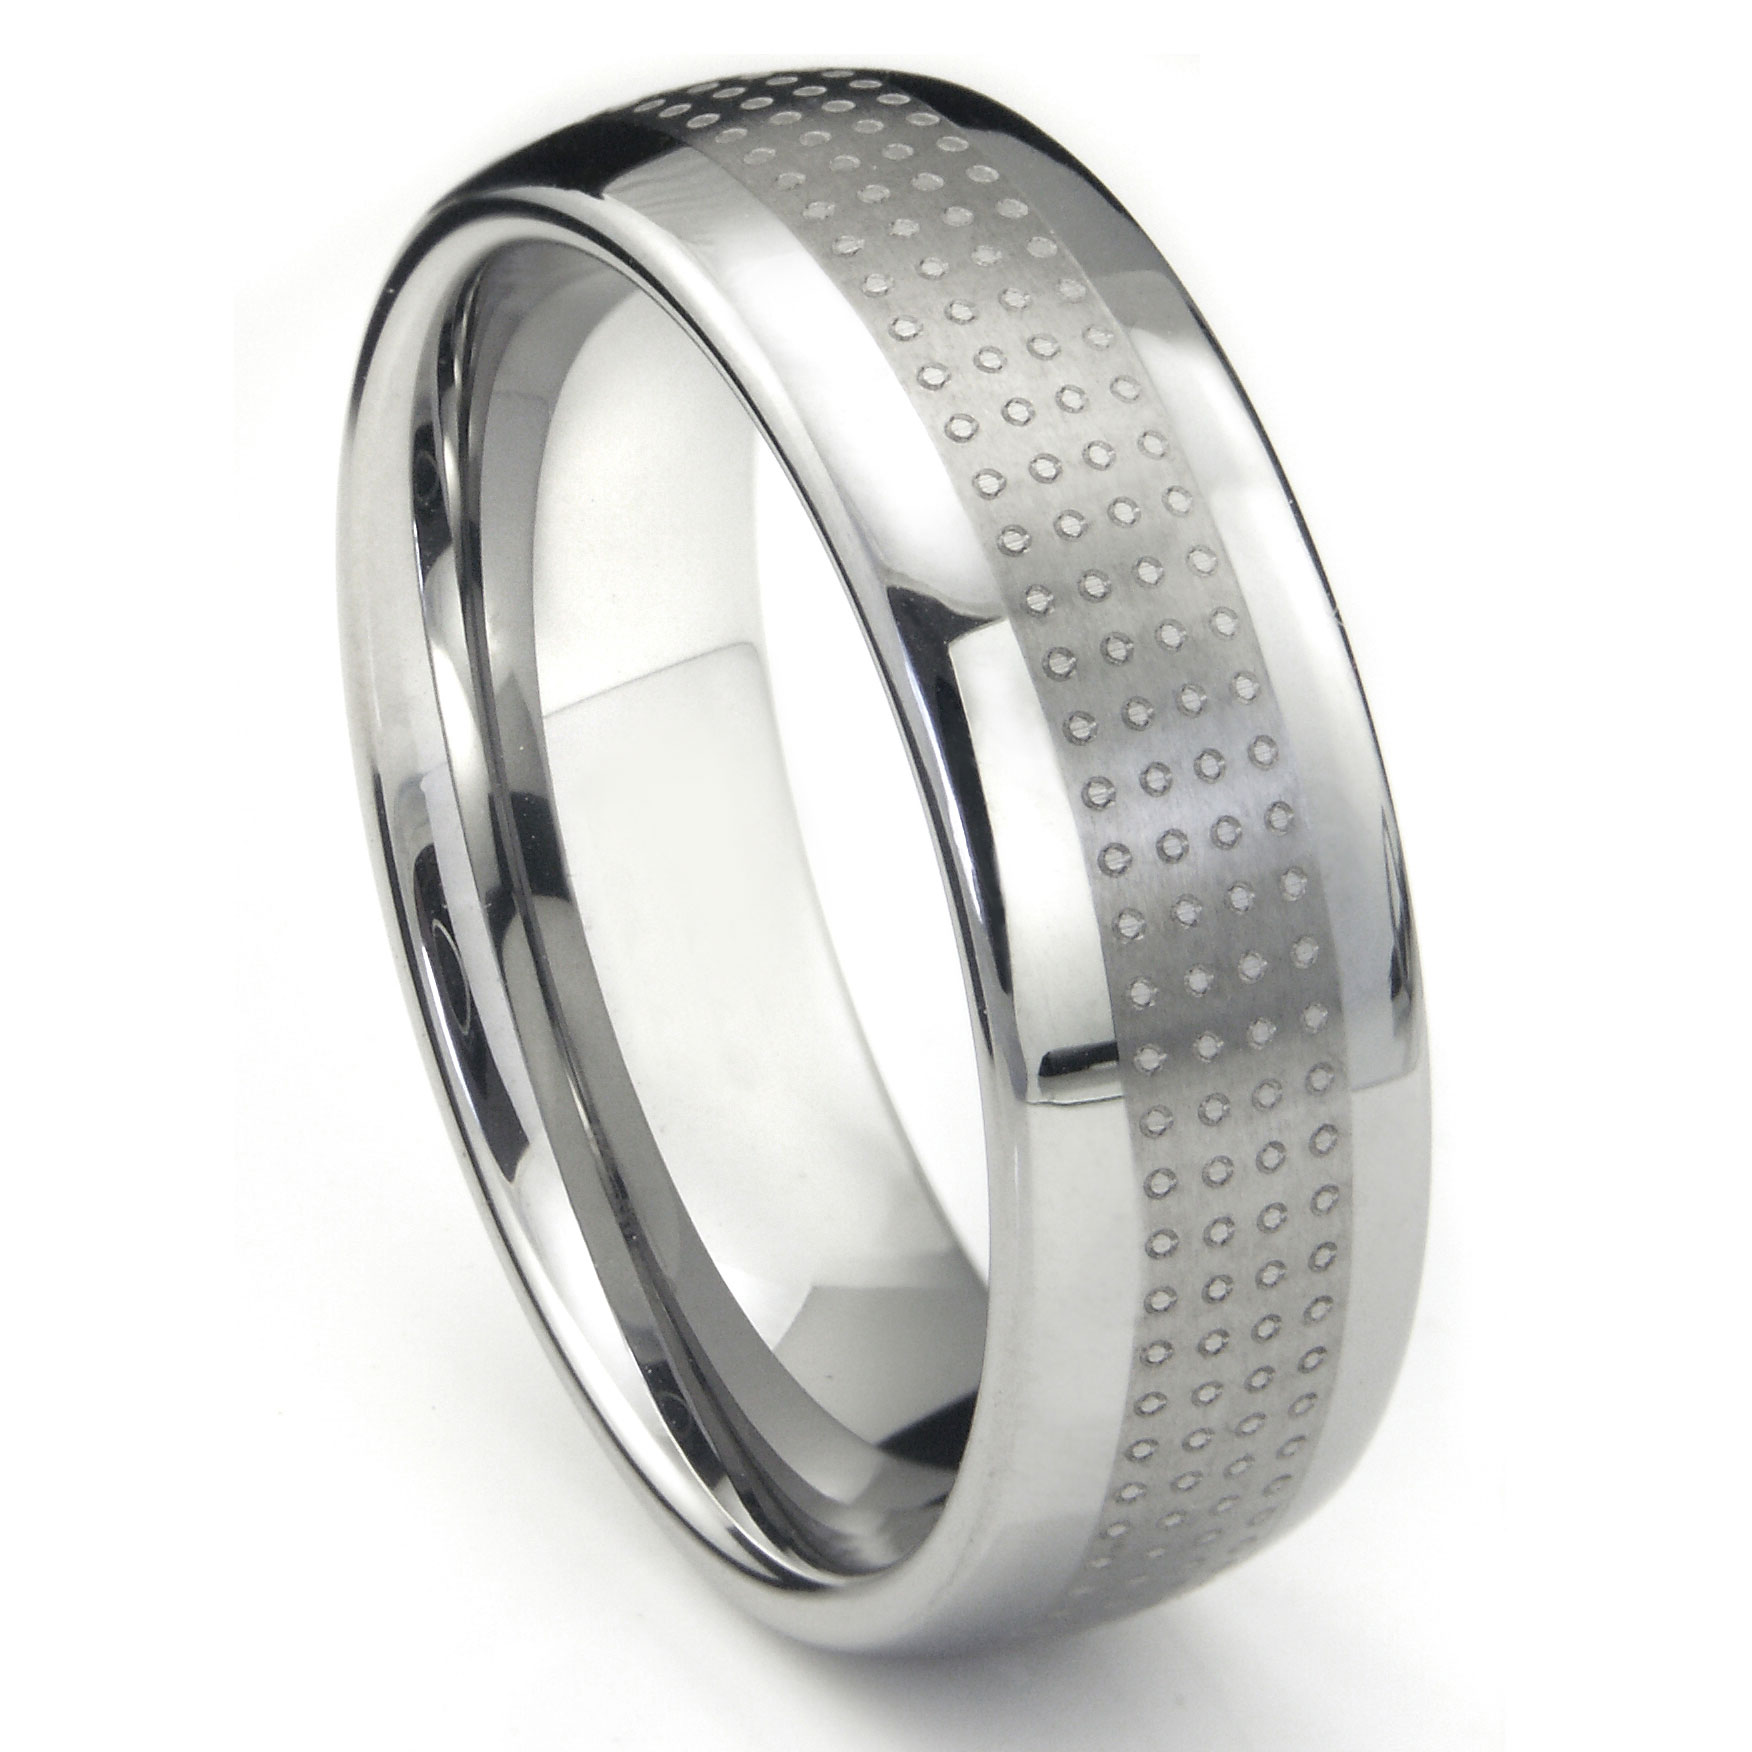 tungsten carbide polka wedding band ring. Black Bedroom Furniture Sets. Home Design Ideas